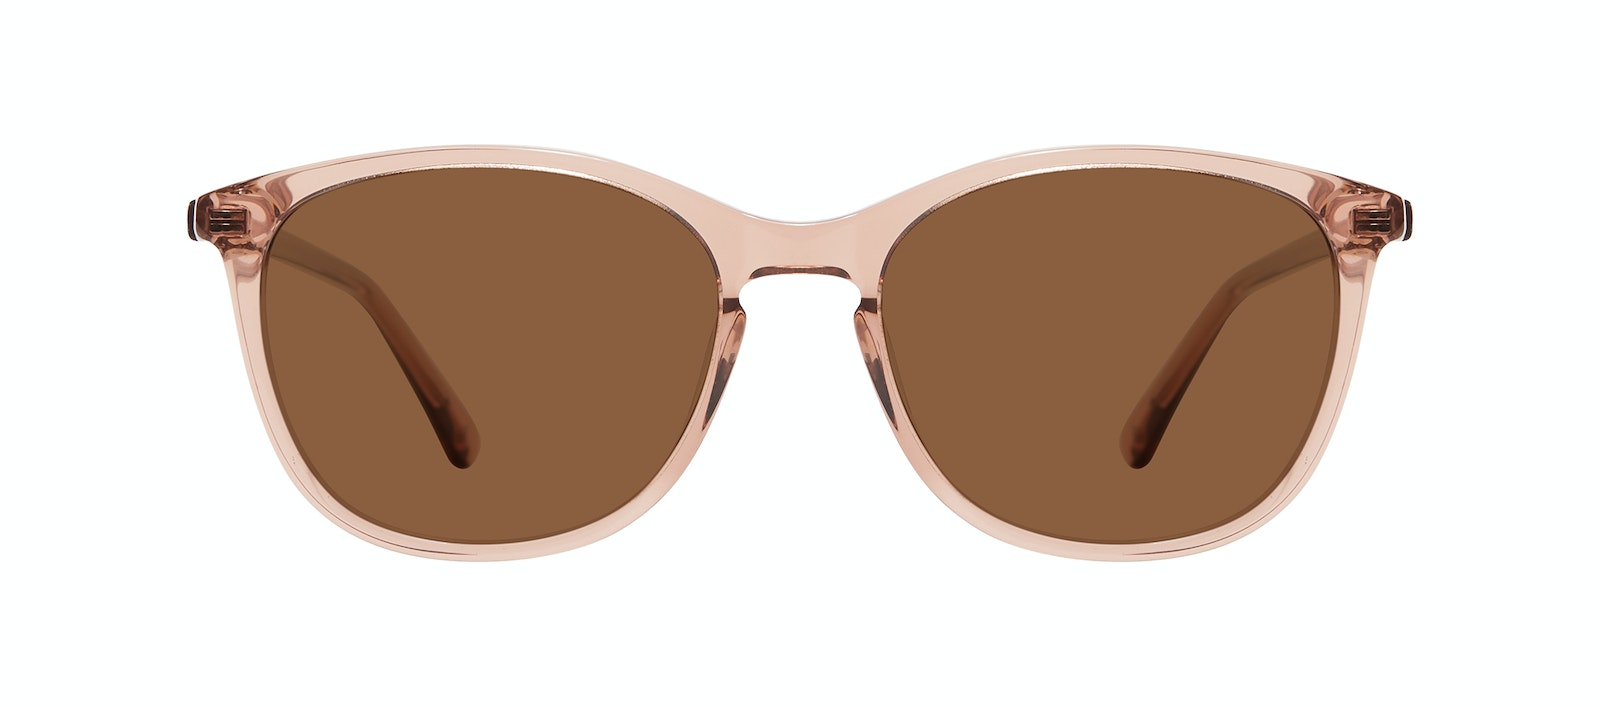 Affordable Fashion Glasses Rectangle Square Round Sunglasses Women Nadine M Rose Front